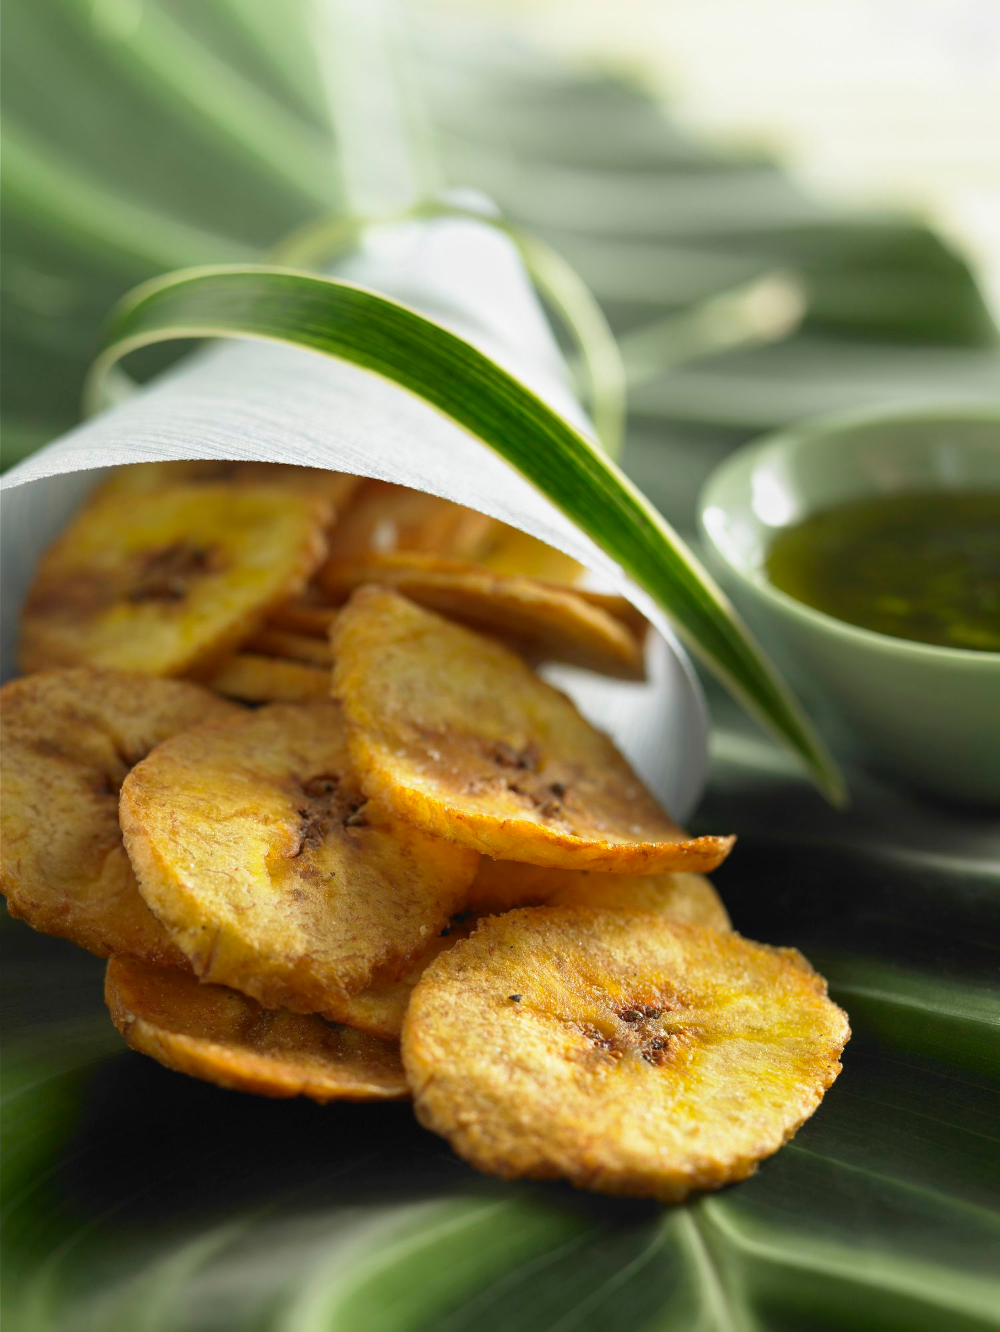 Fried Plantain Chips Chifles Recipe Recipe Plantain Chips Fried Plantain Chips Recipe Plantains Fried